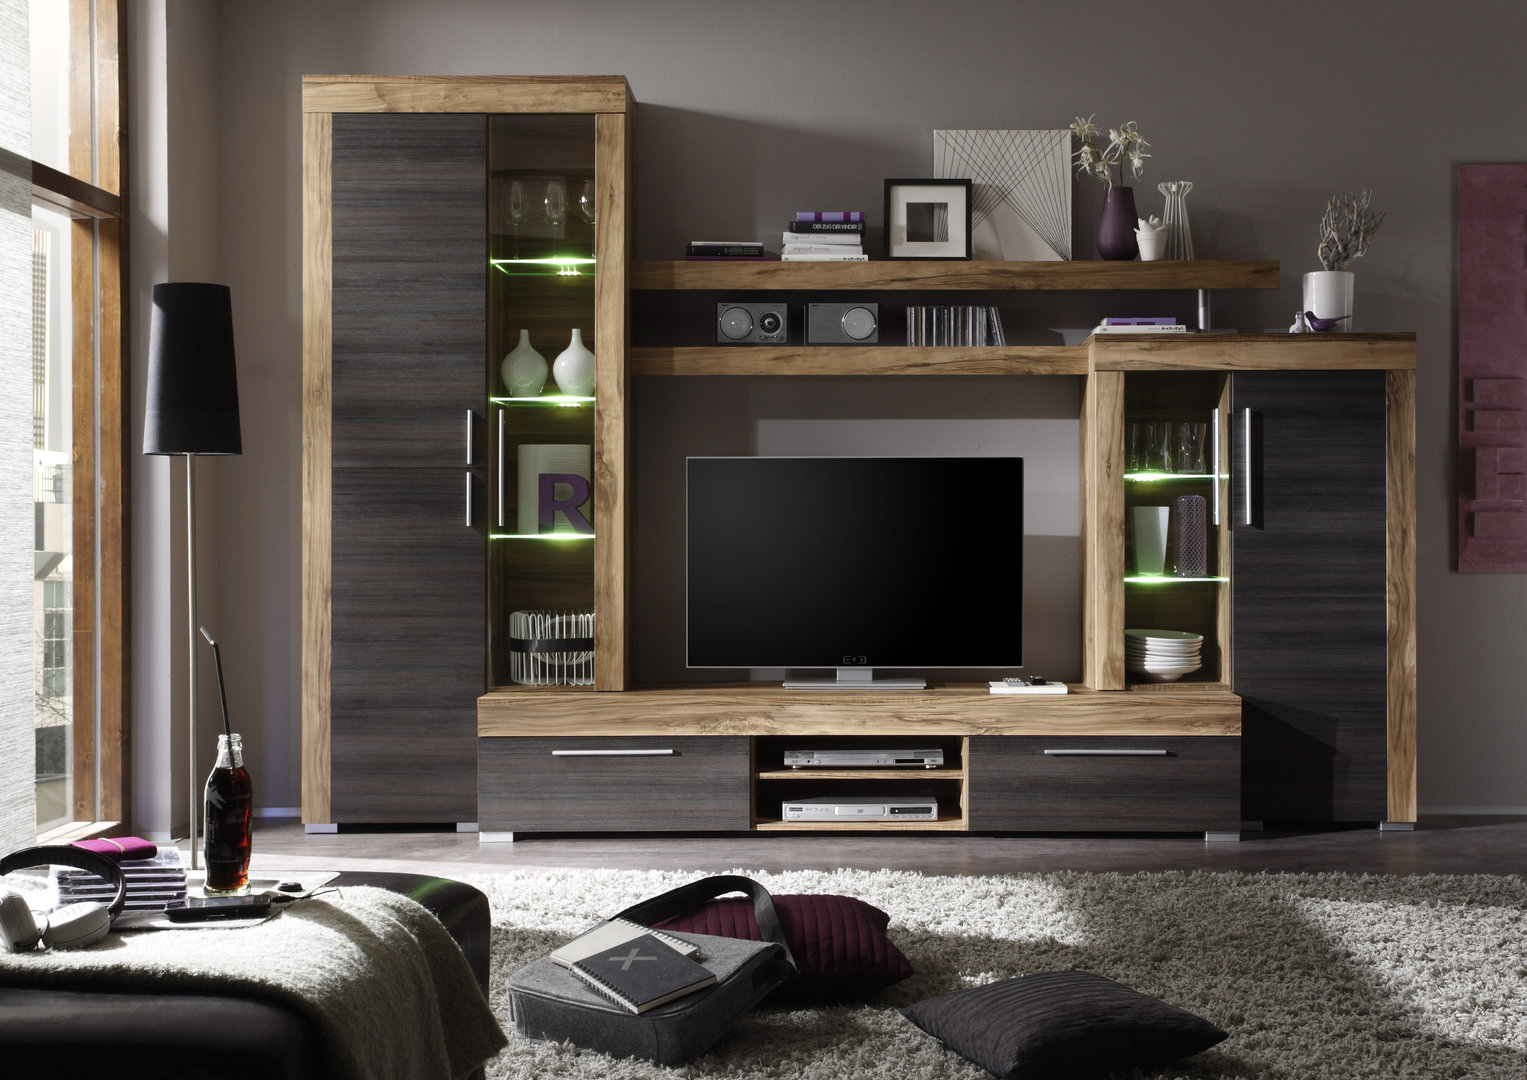 Meuble Complet Salon Soggiorno Moderno Friend, Parete Porta Tv Di Design Con Led